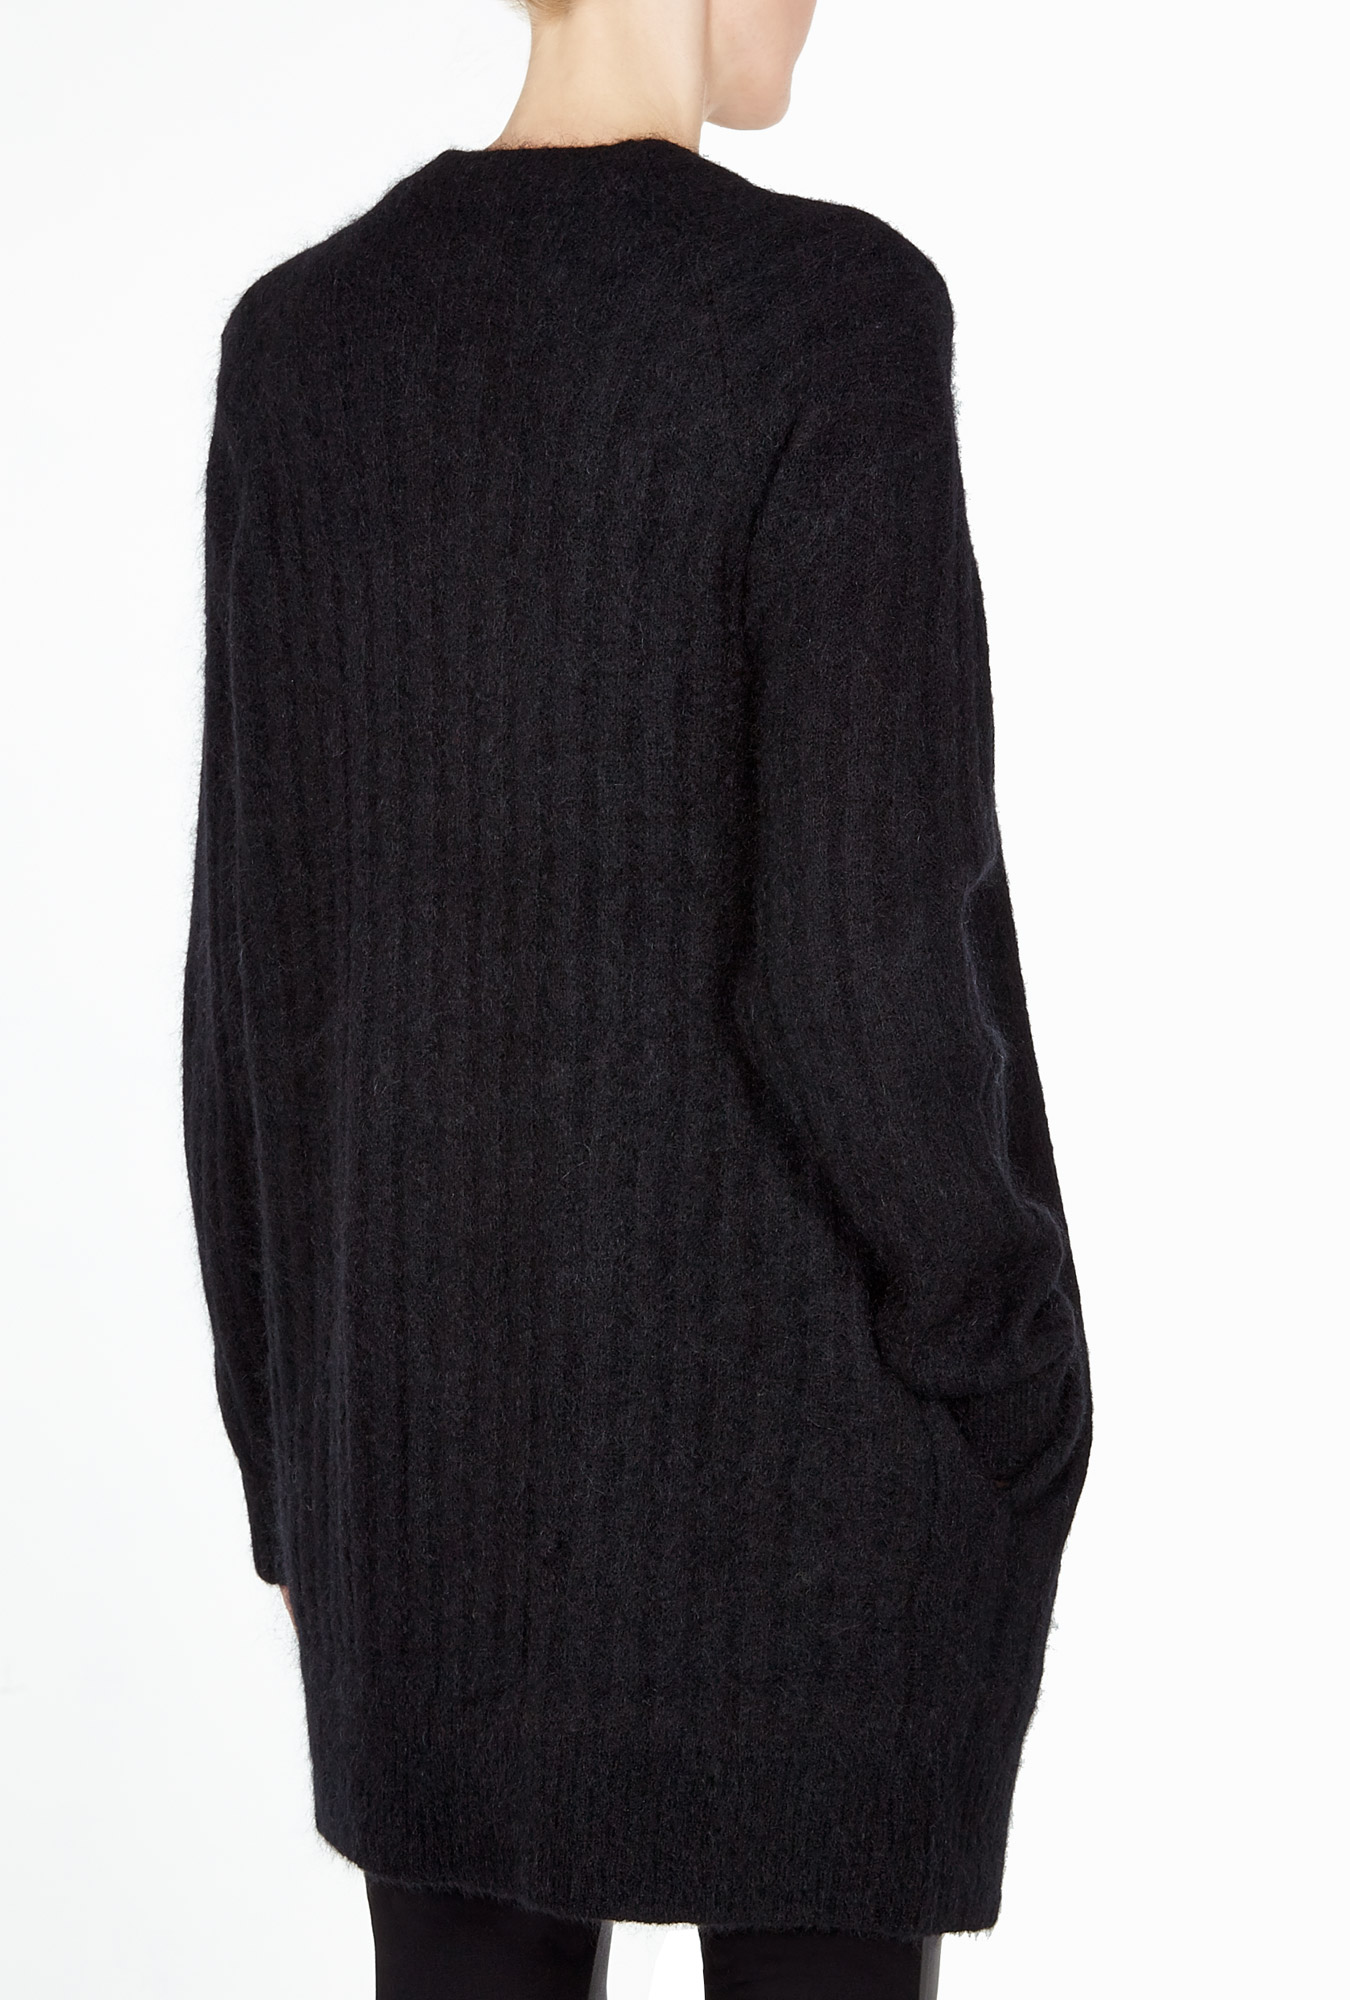 Raya Black Short Rib Cardigan By Acne